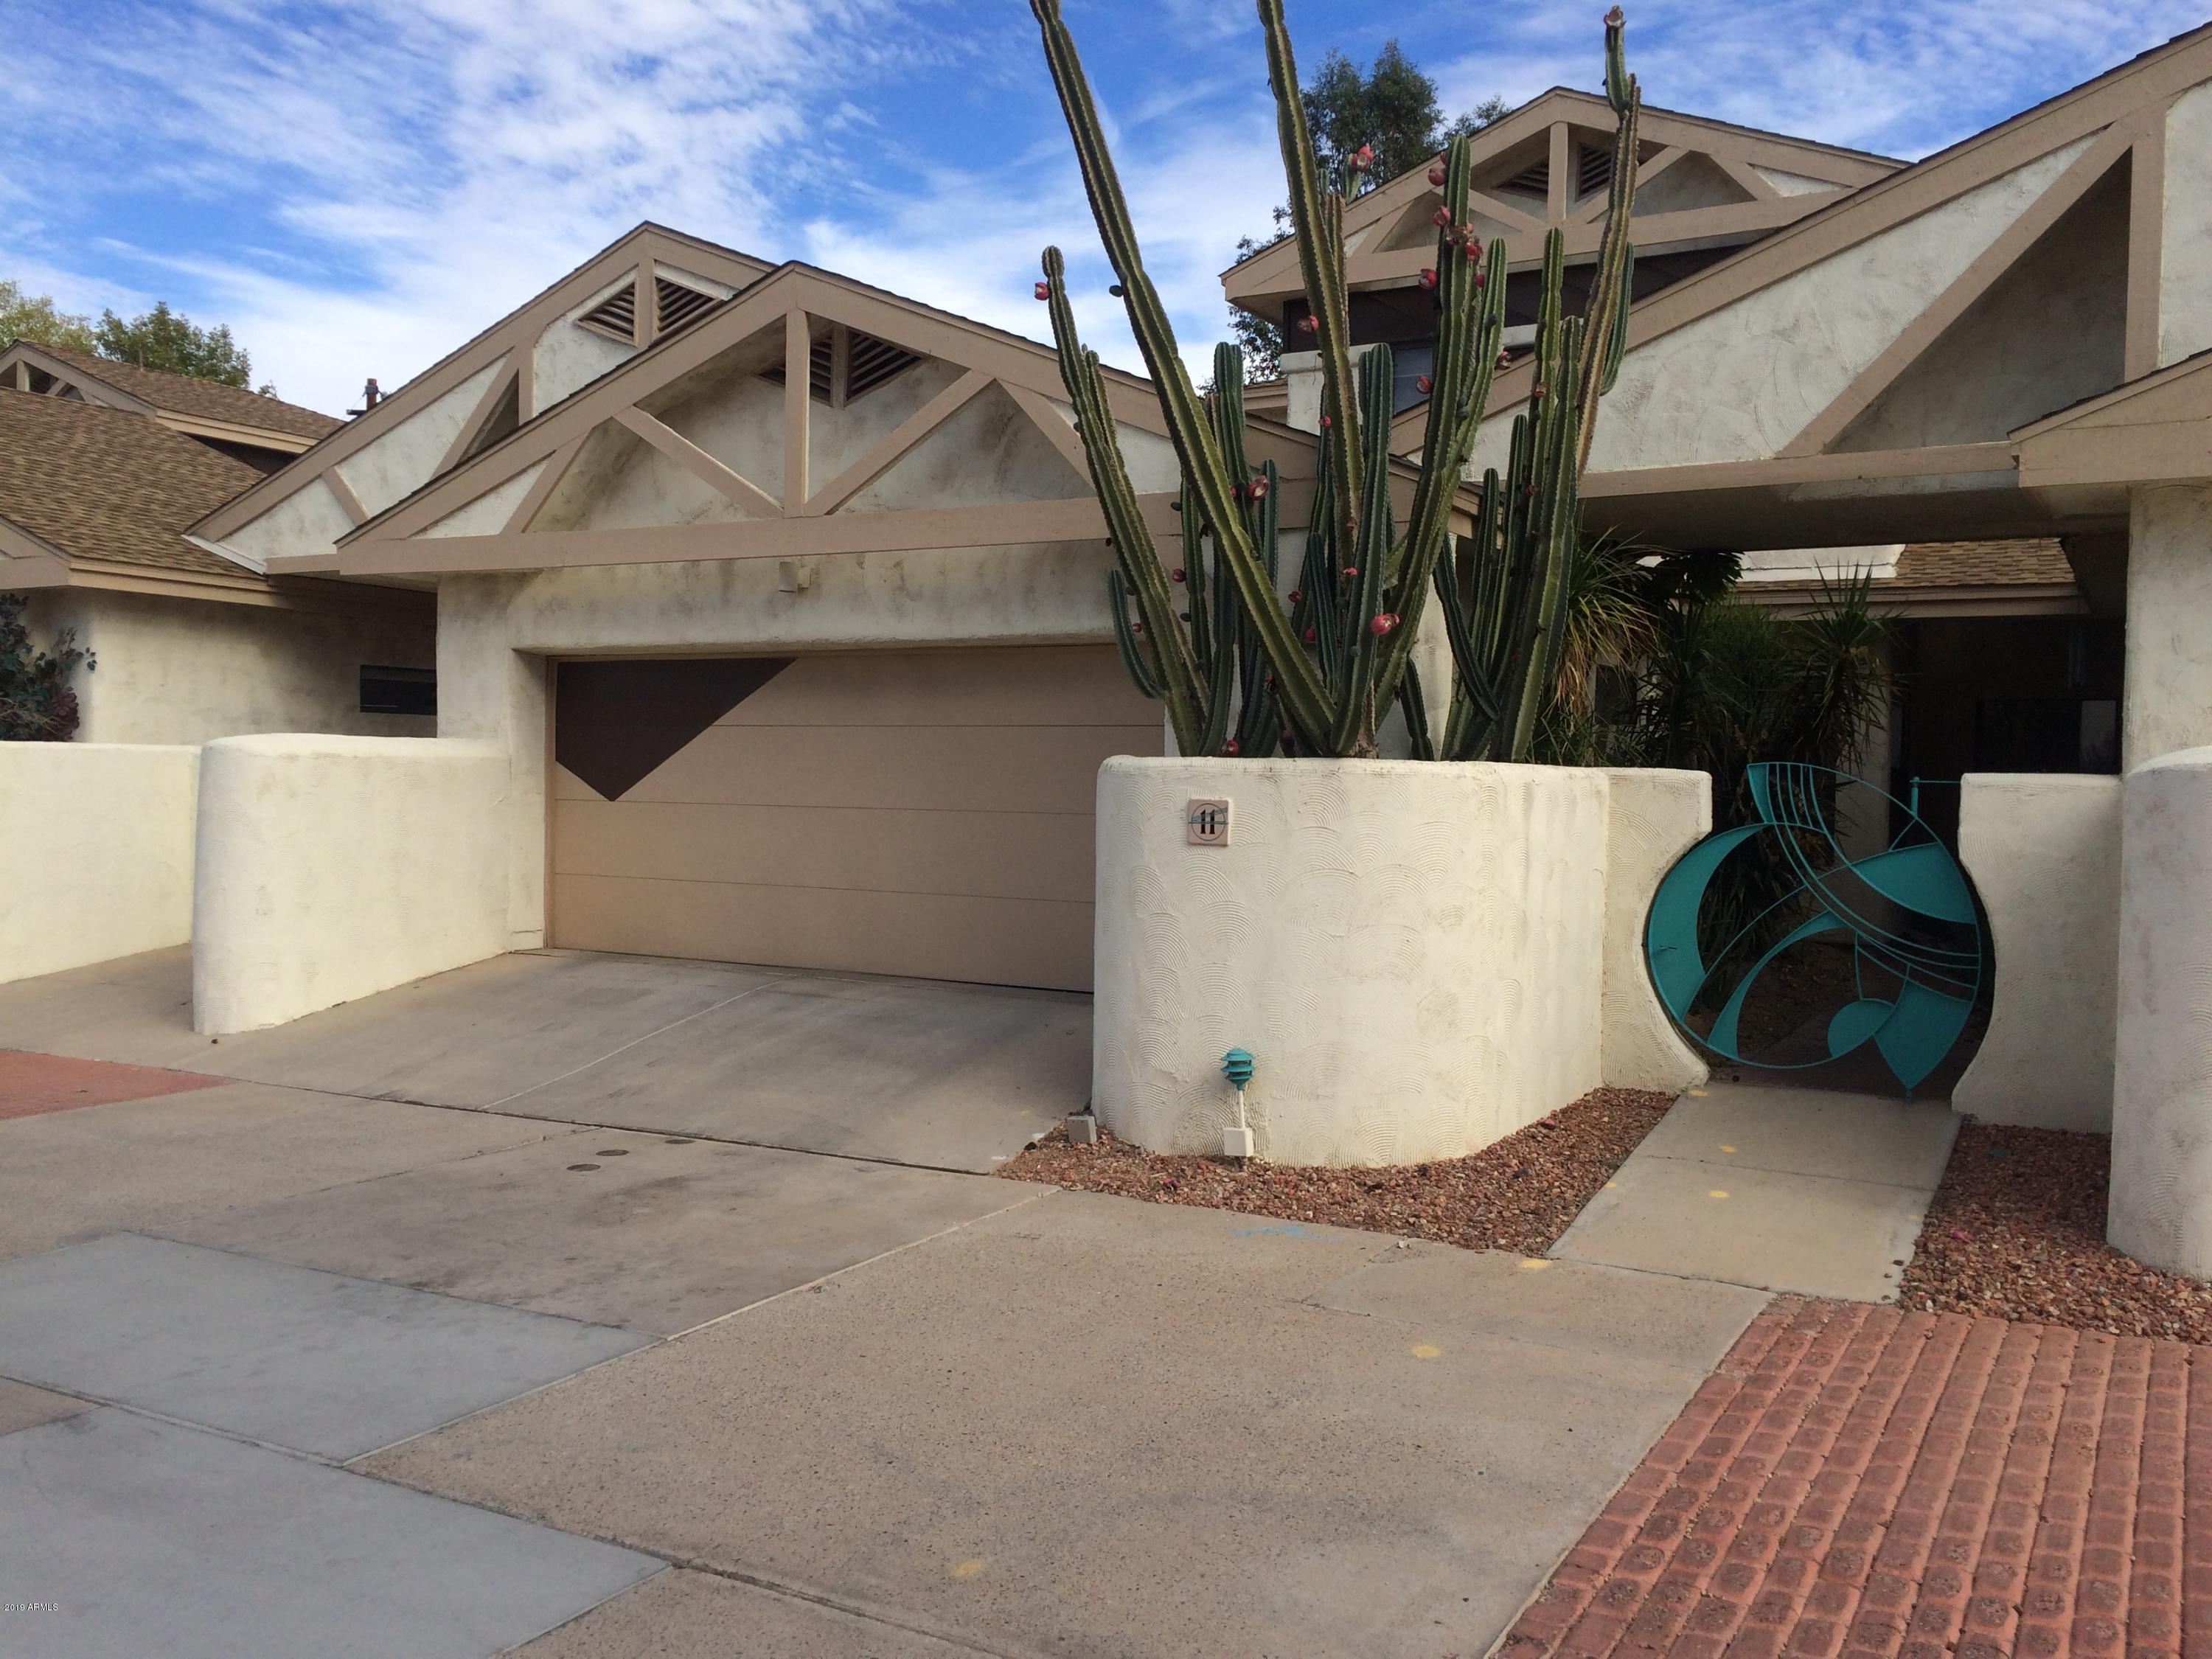 Photo for 33 W Missouri Avenue, Unit 11, Phoenix, AZ 85013 (MLS # 5870228)